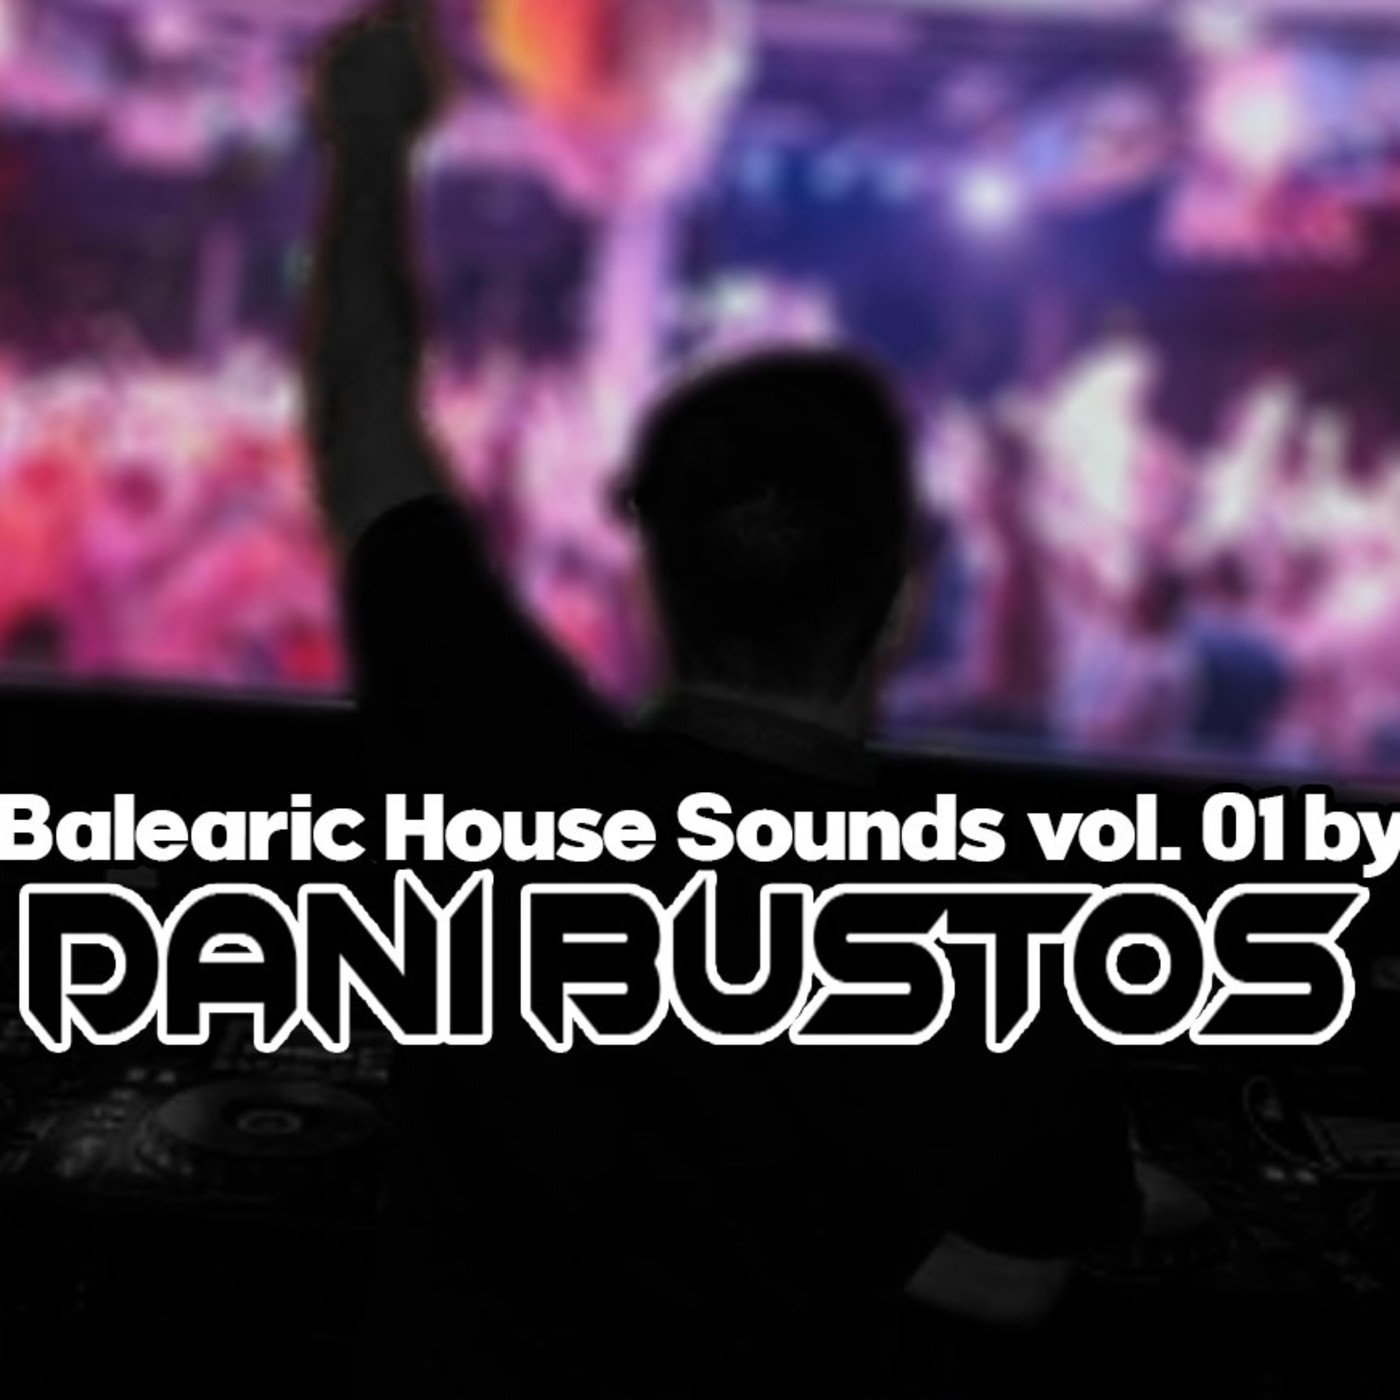 Balearic House Sounds by Dani Bustos vol. 01